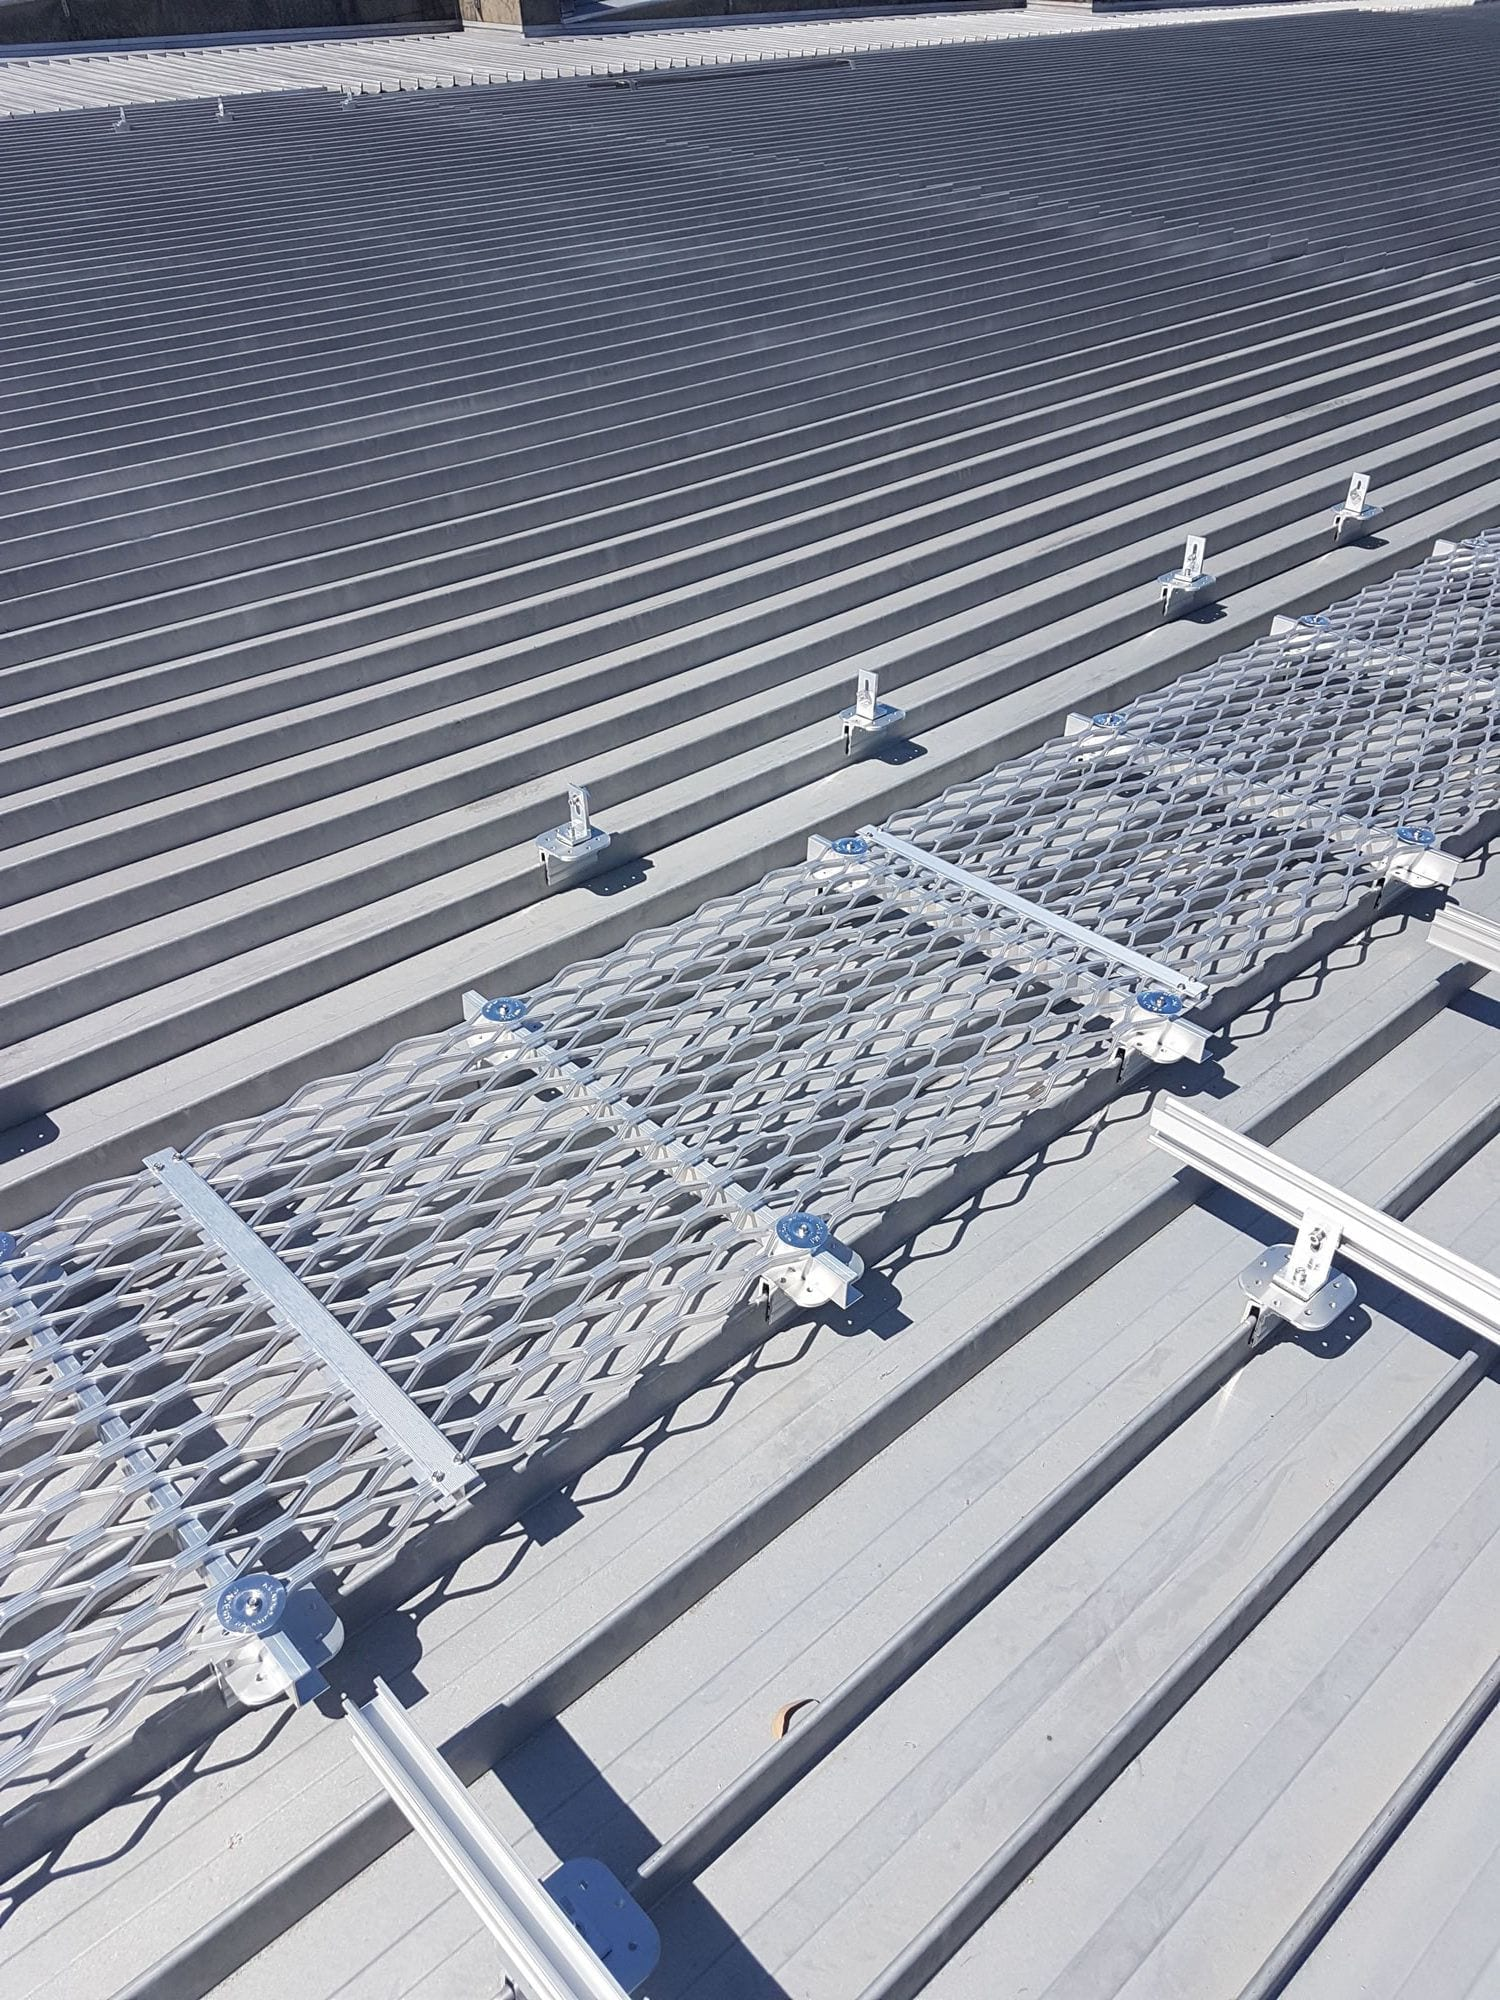 Metal walkway on rooftop